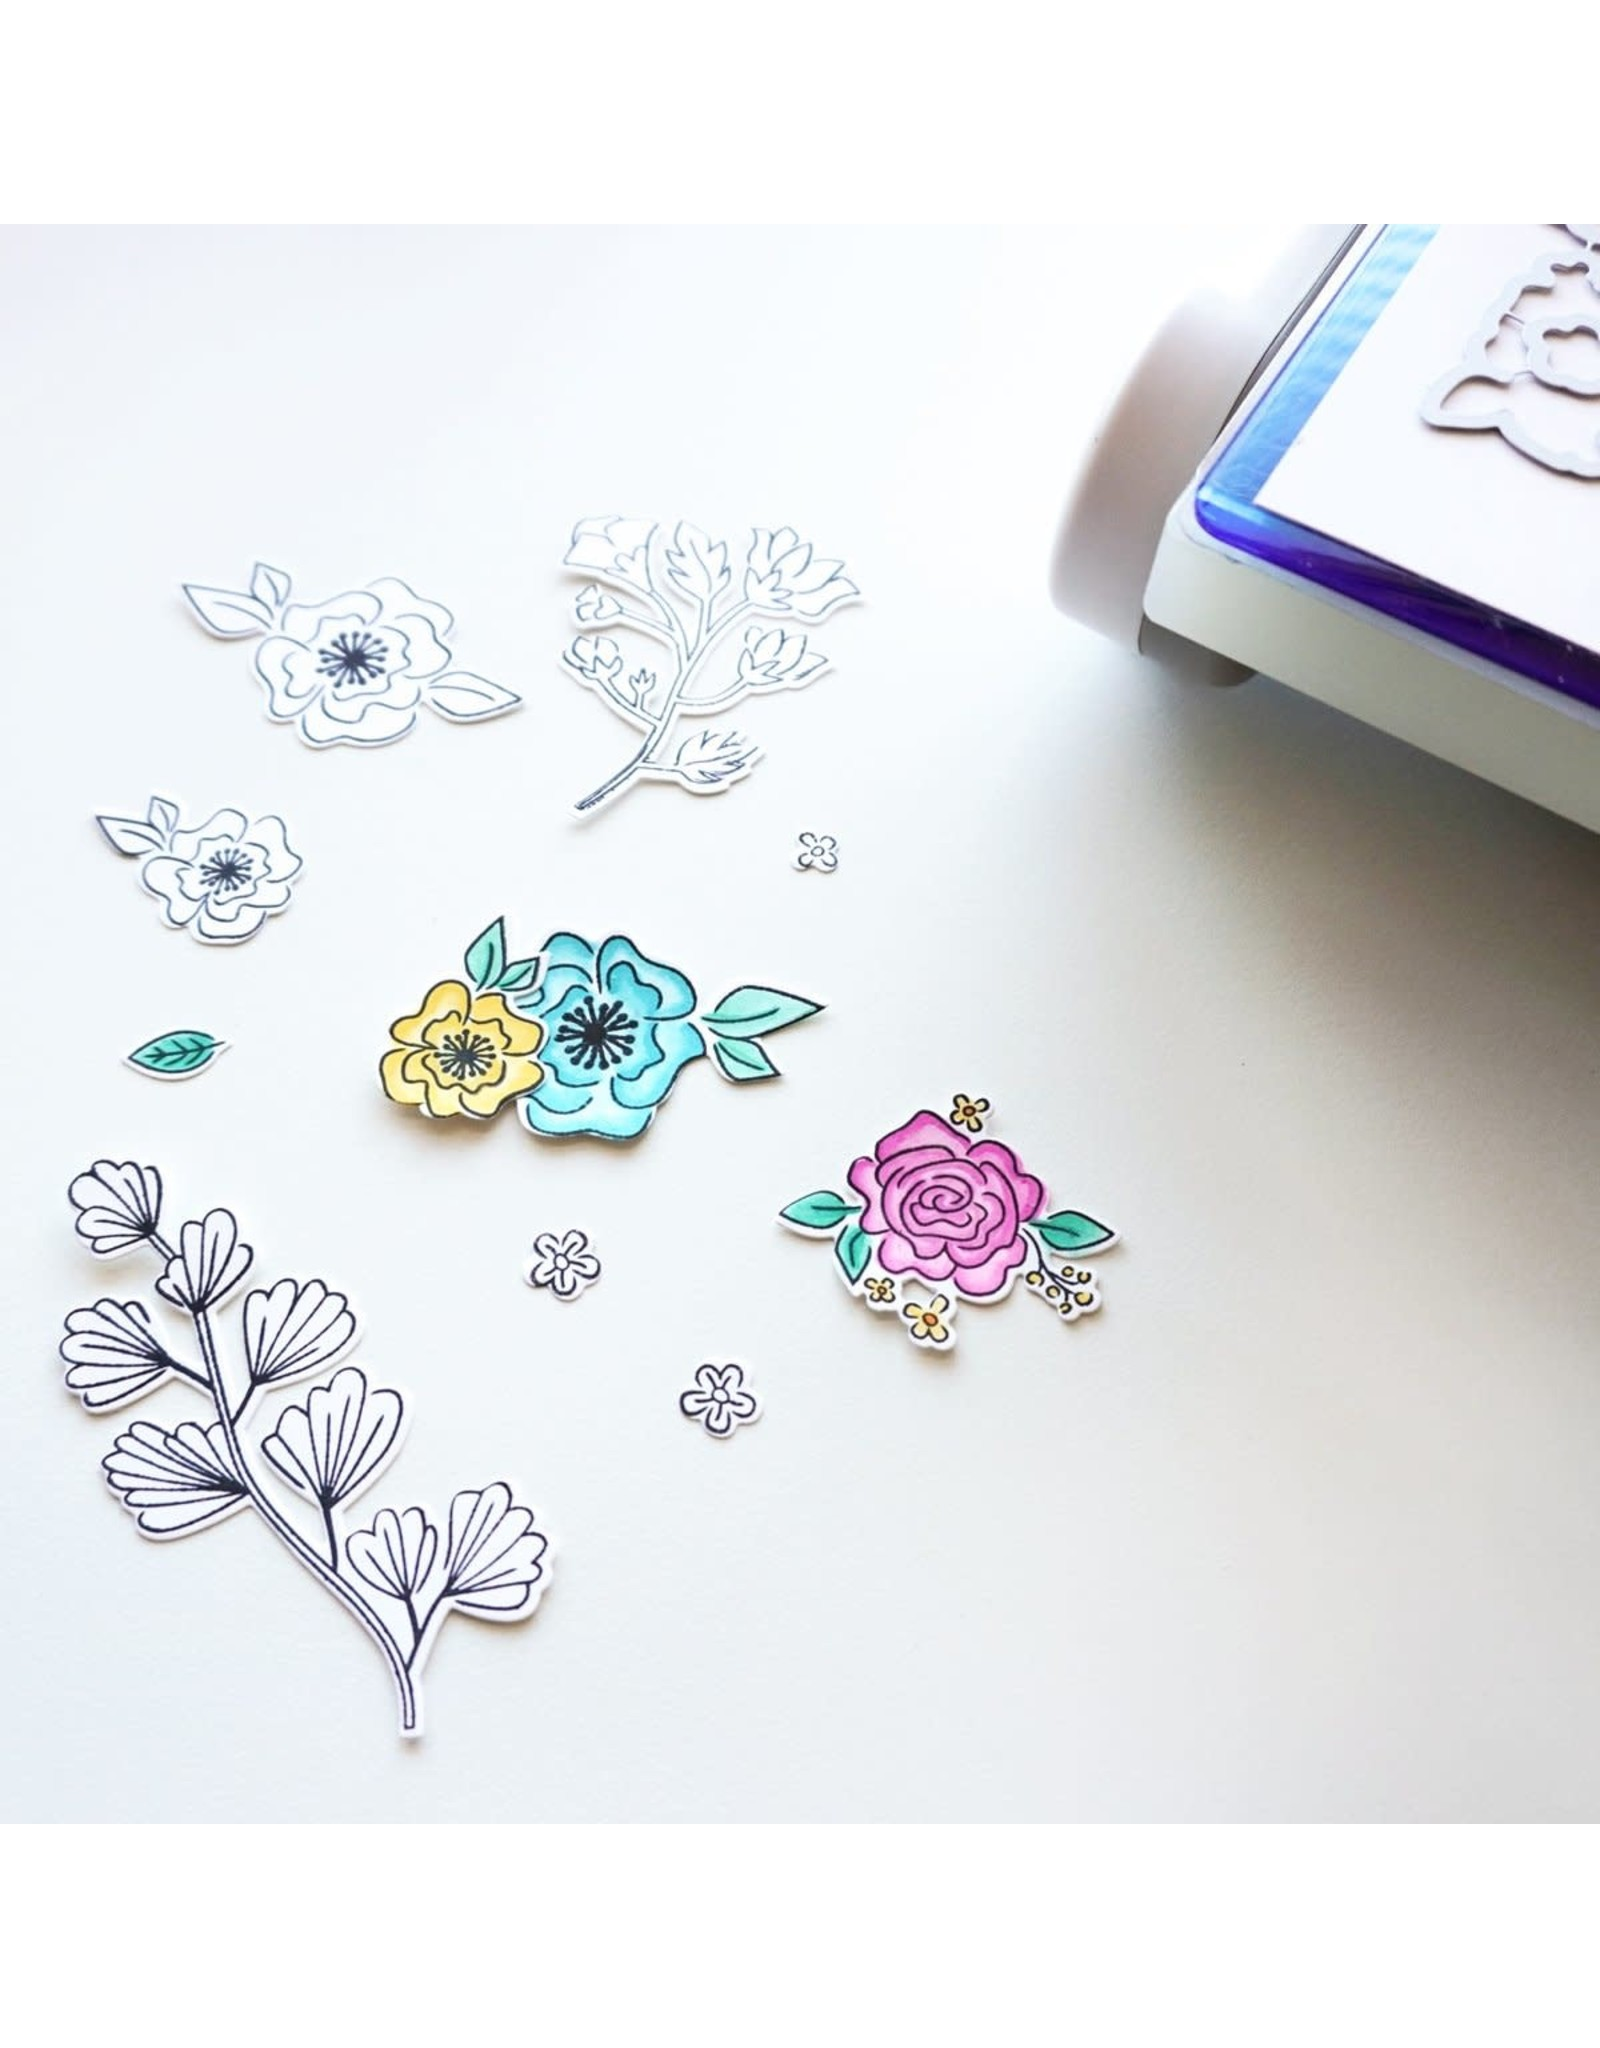 Catherine Pooler Designs Best Things In Life Floral Stamp